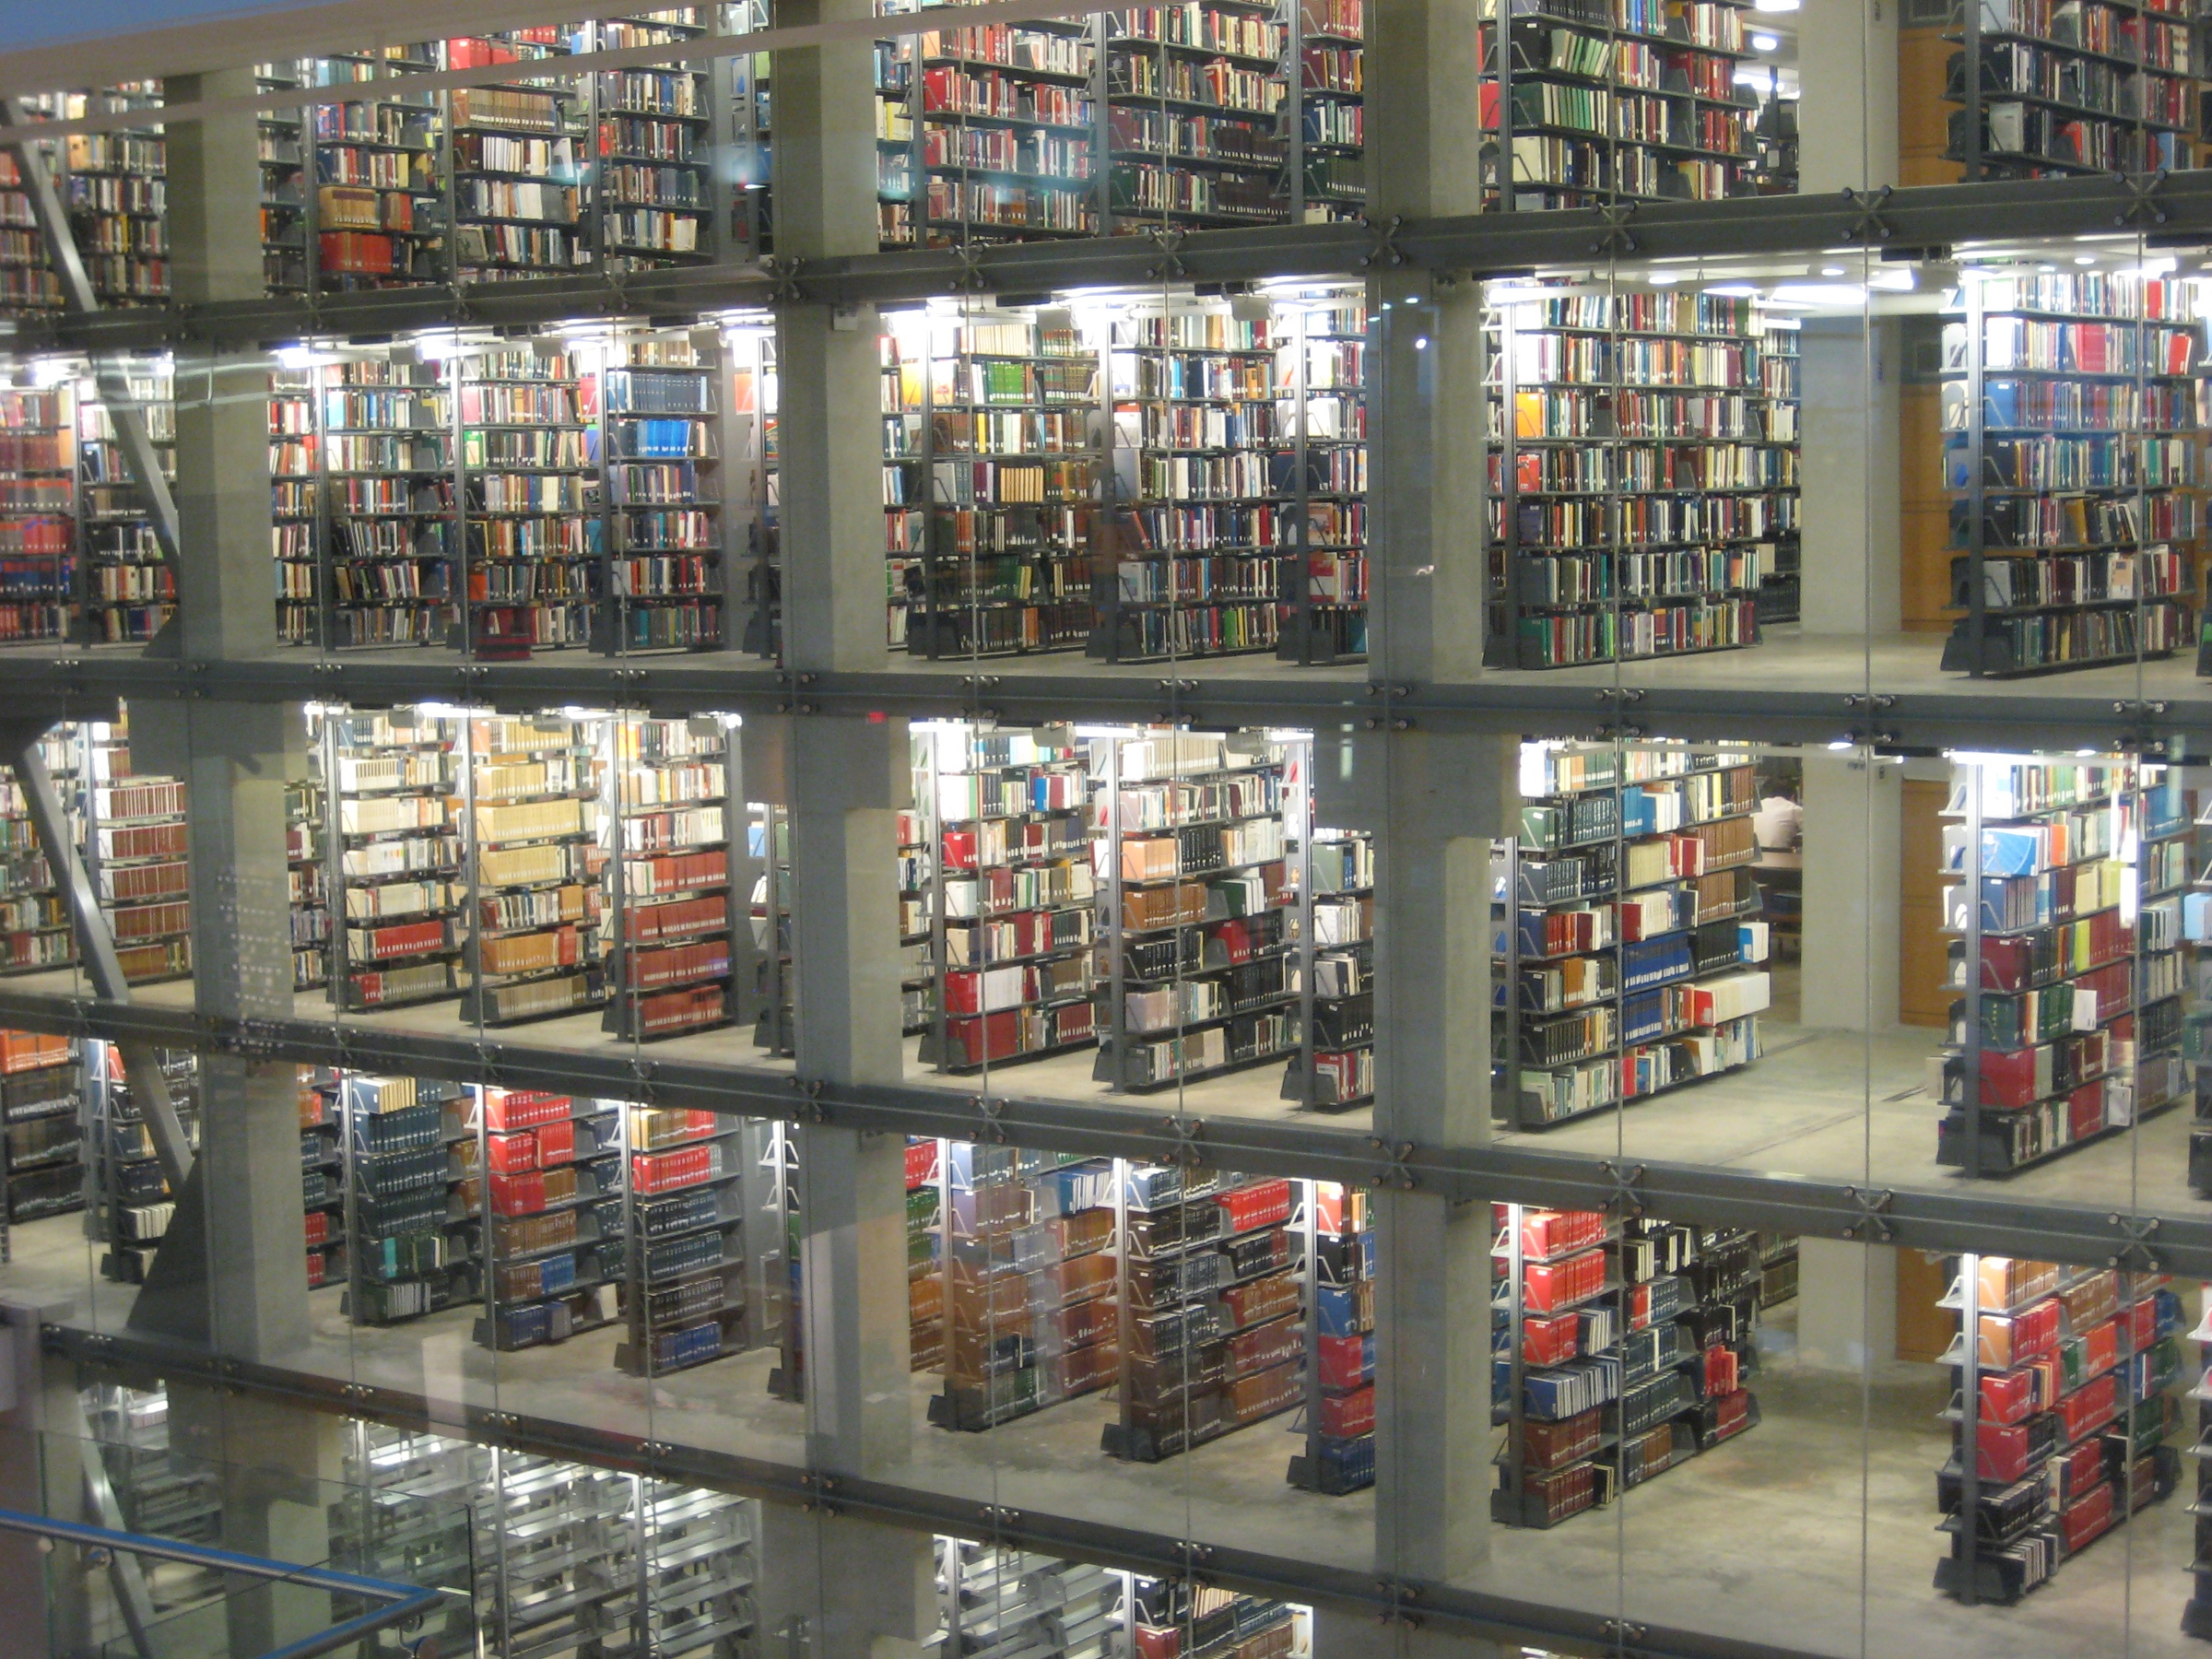 thompson library at the ohio state university anderson aluminum photo 4